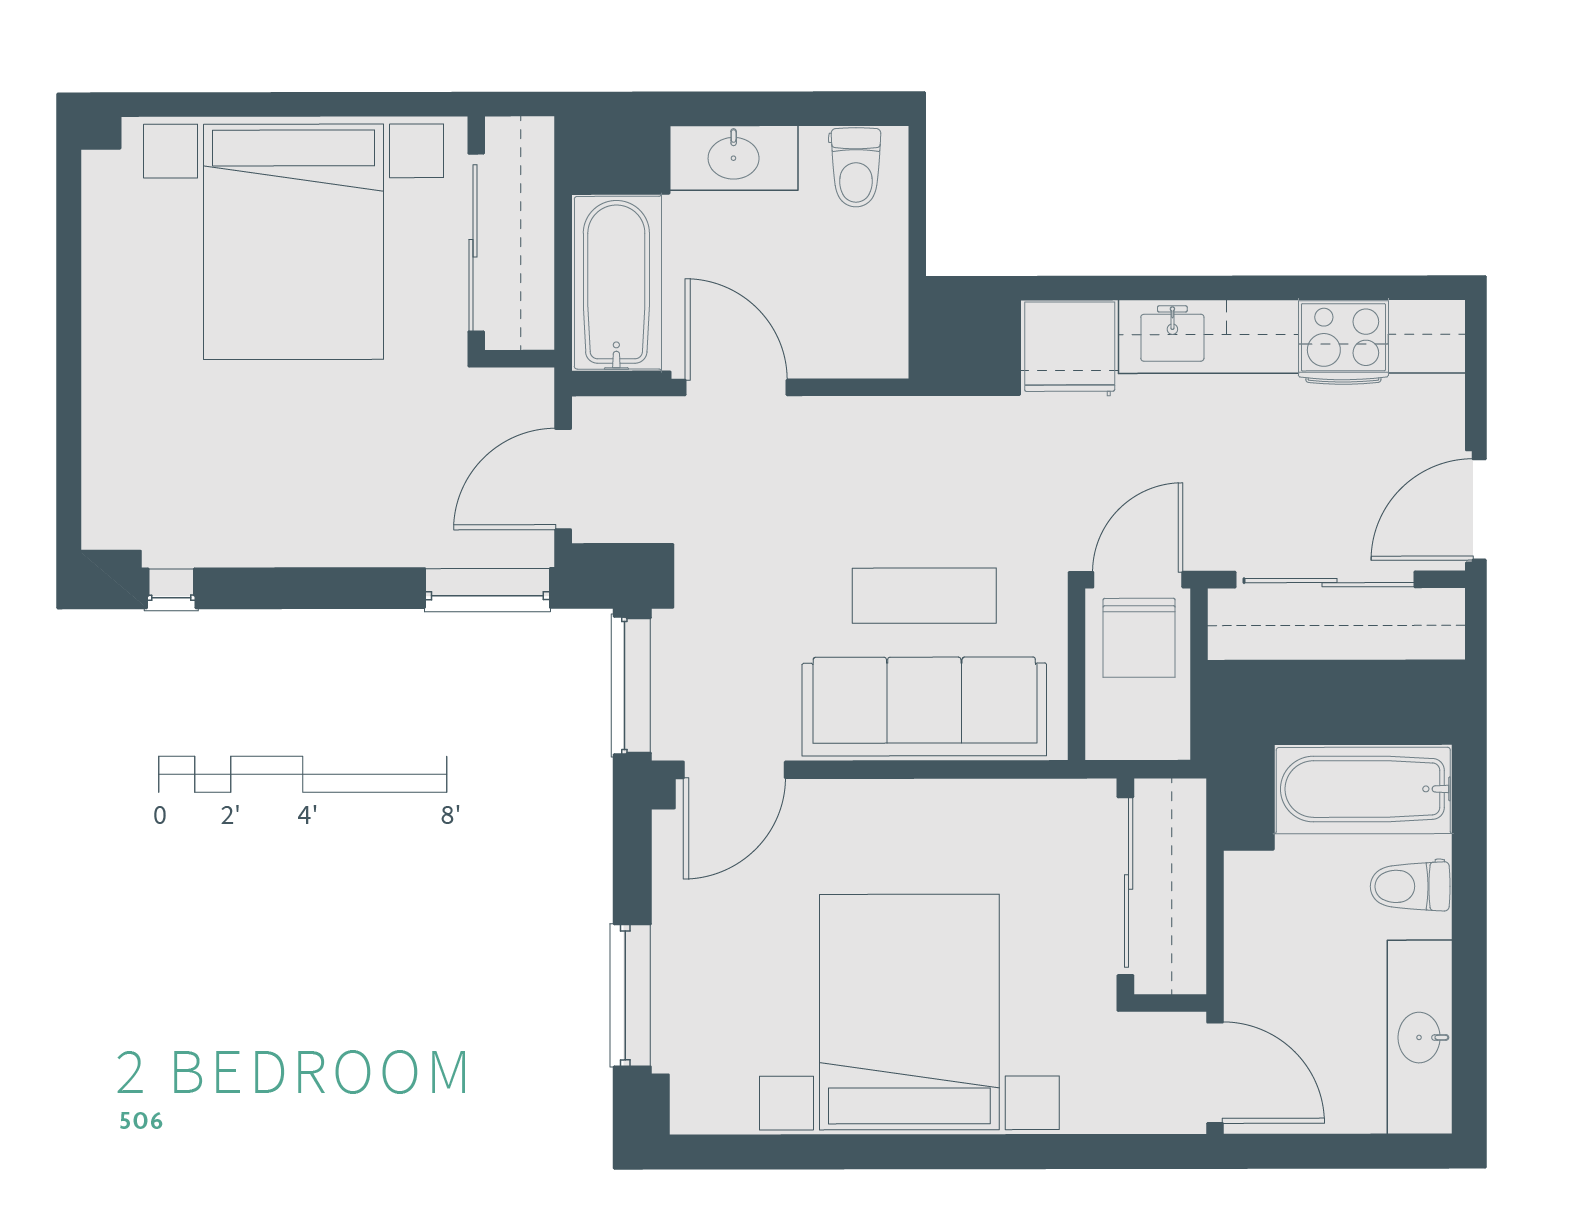 tioga-2bed-506.png